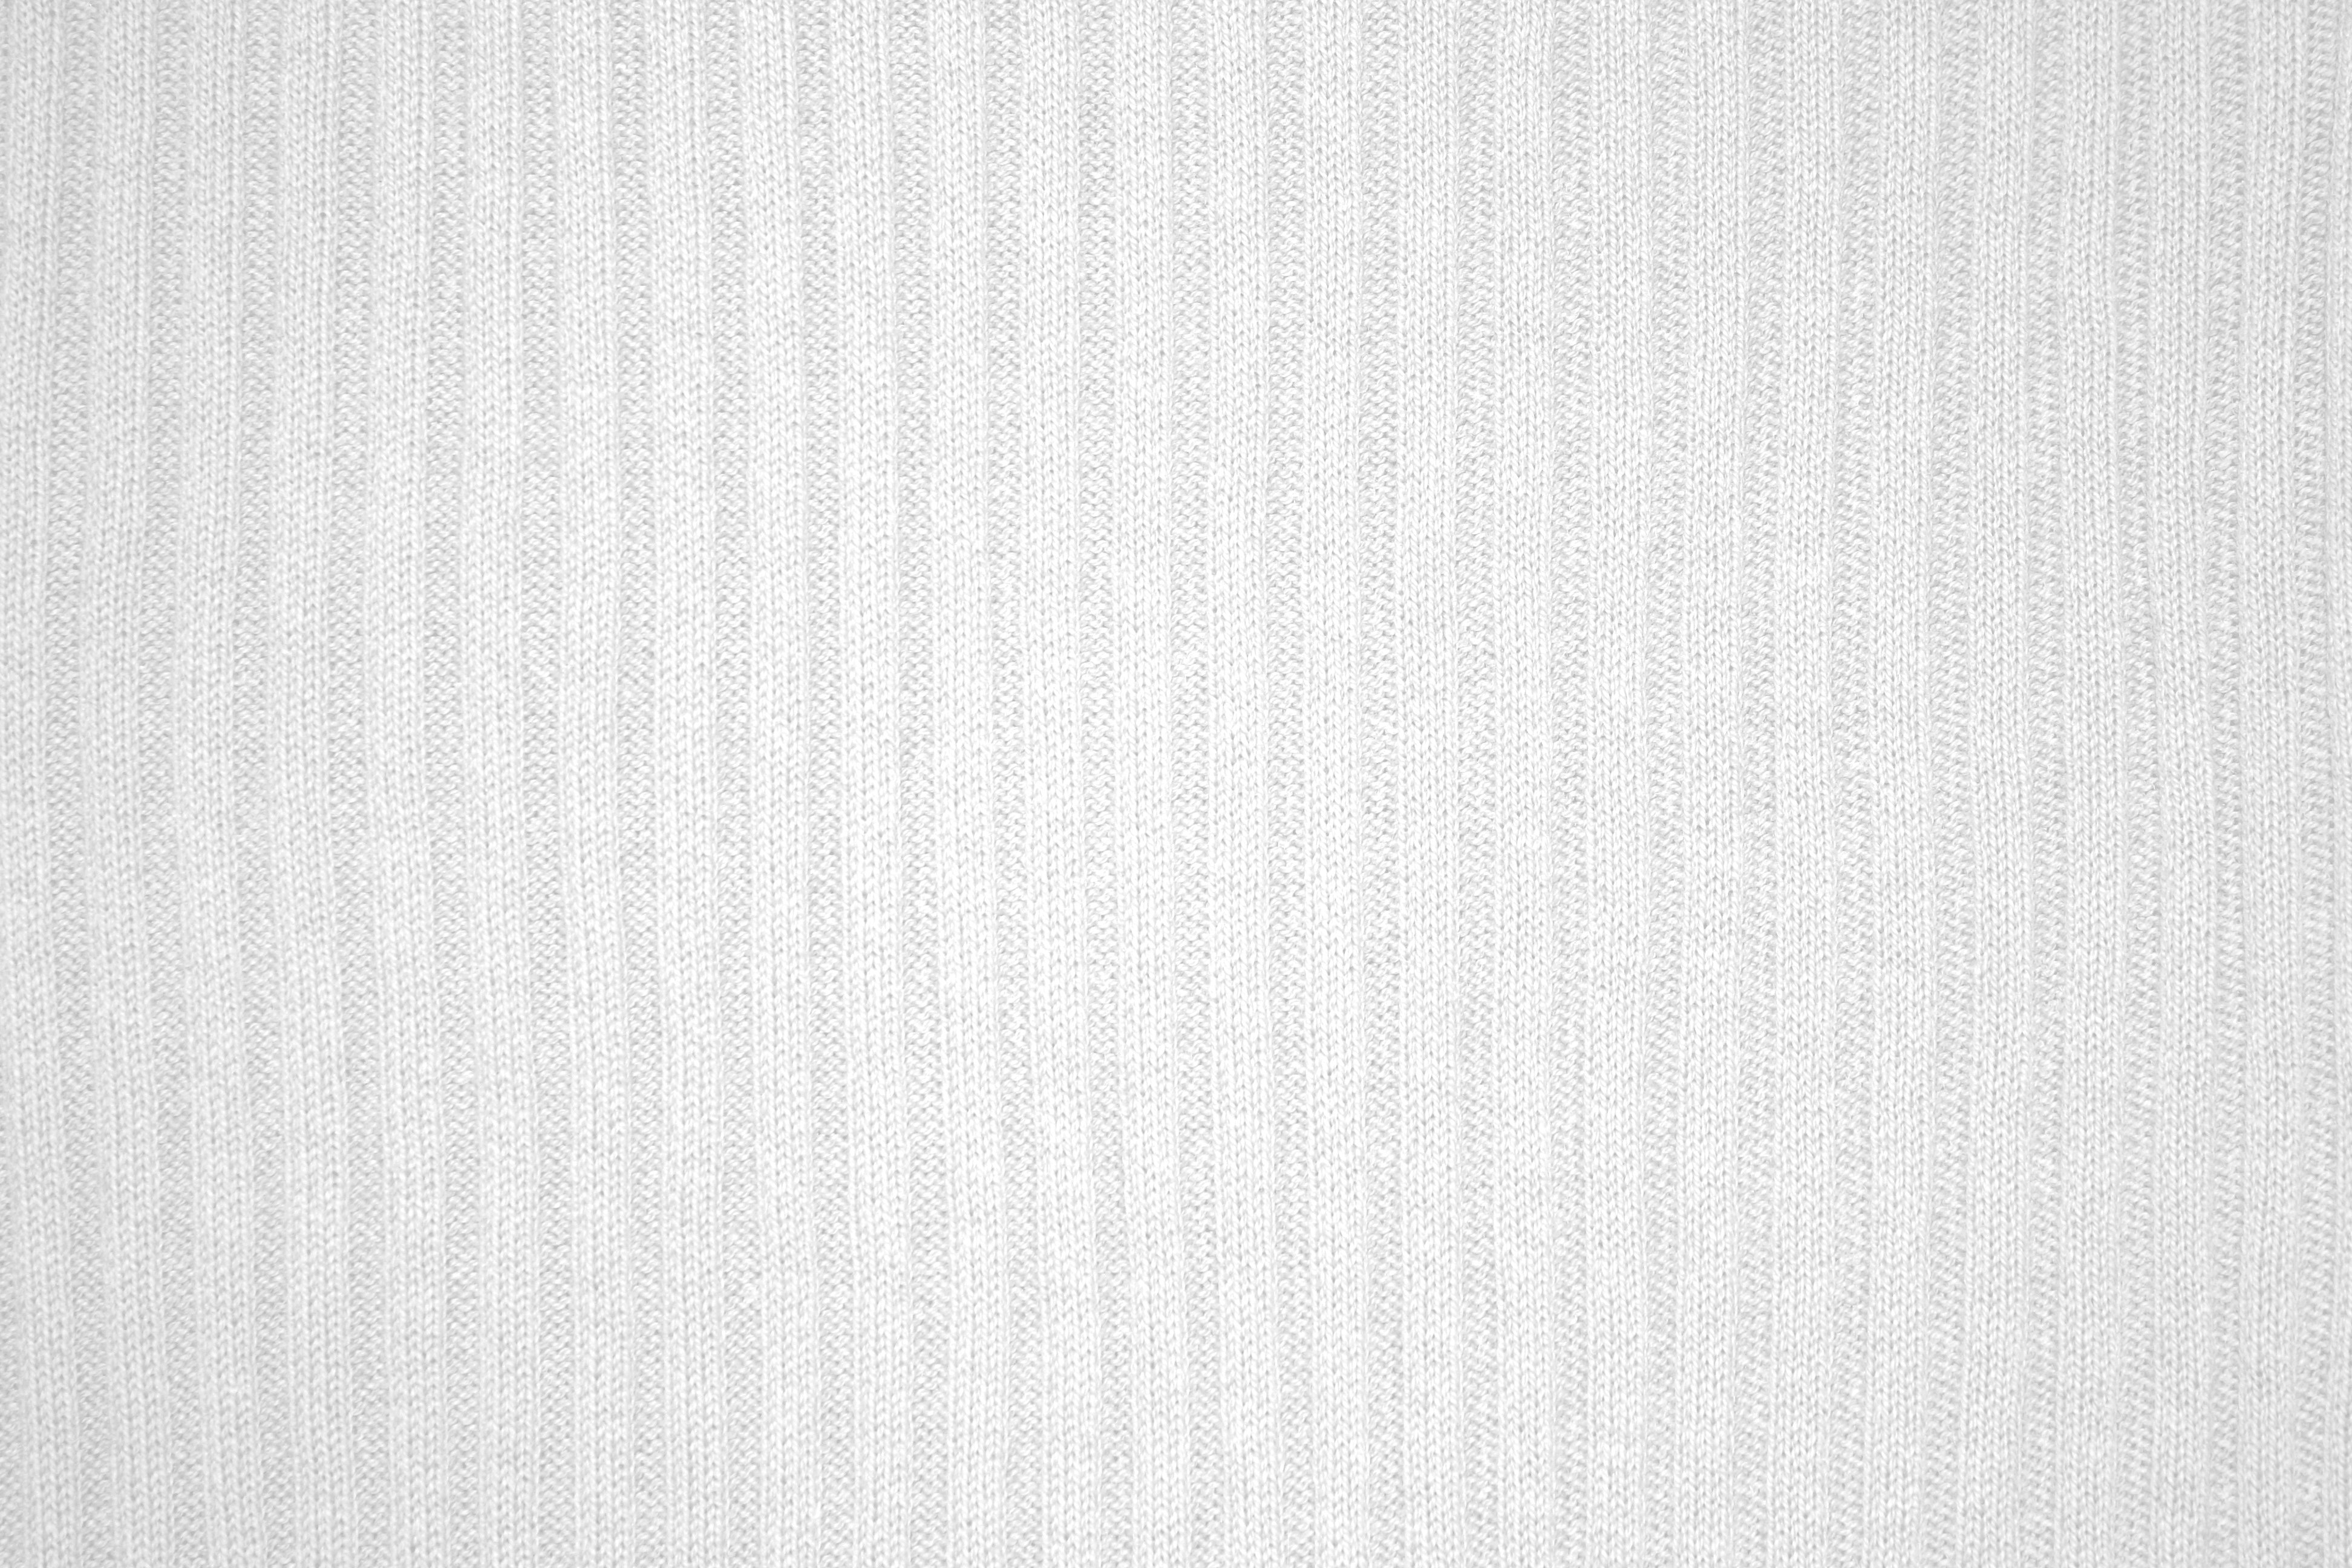 White-Background-105